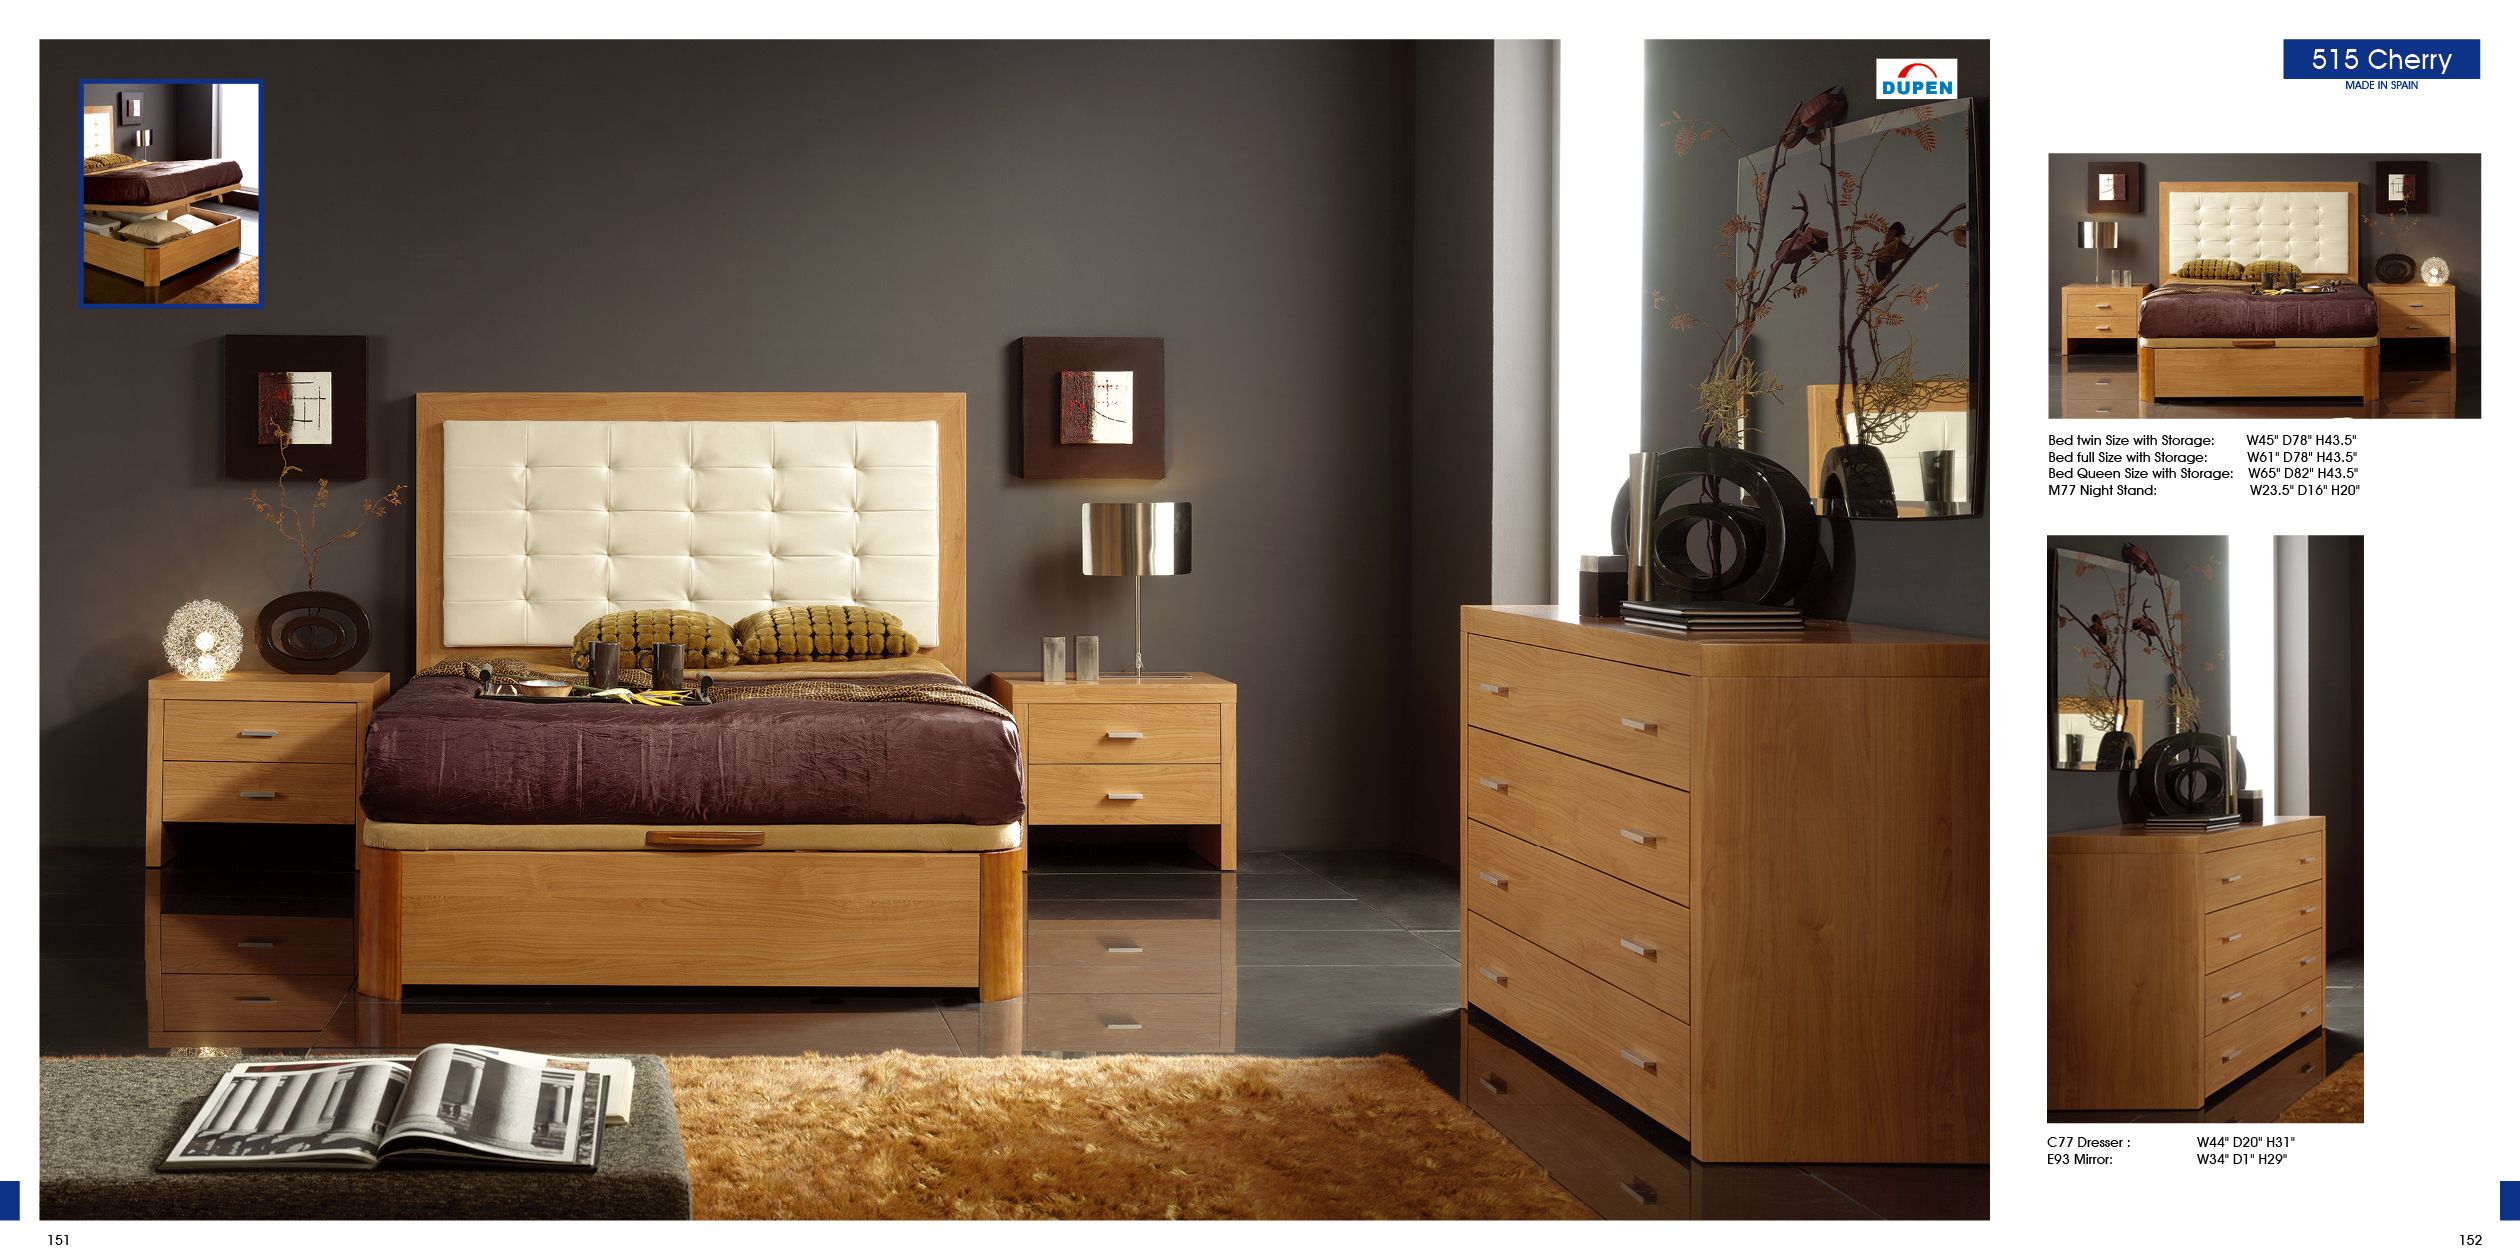 Bedroom Sets Light Wood alicante 515 cherry, m77, c77 the contemporary bedroom set